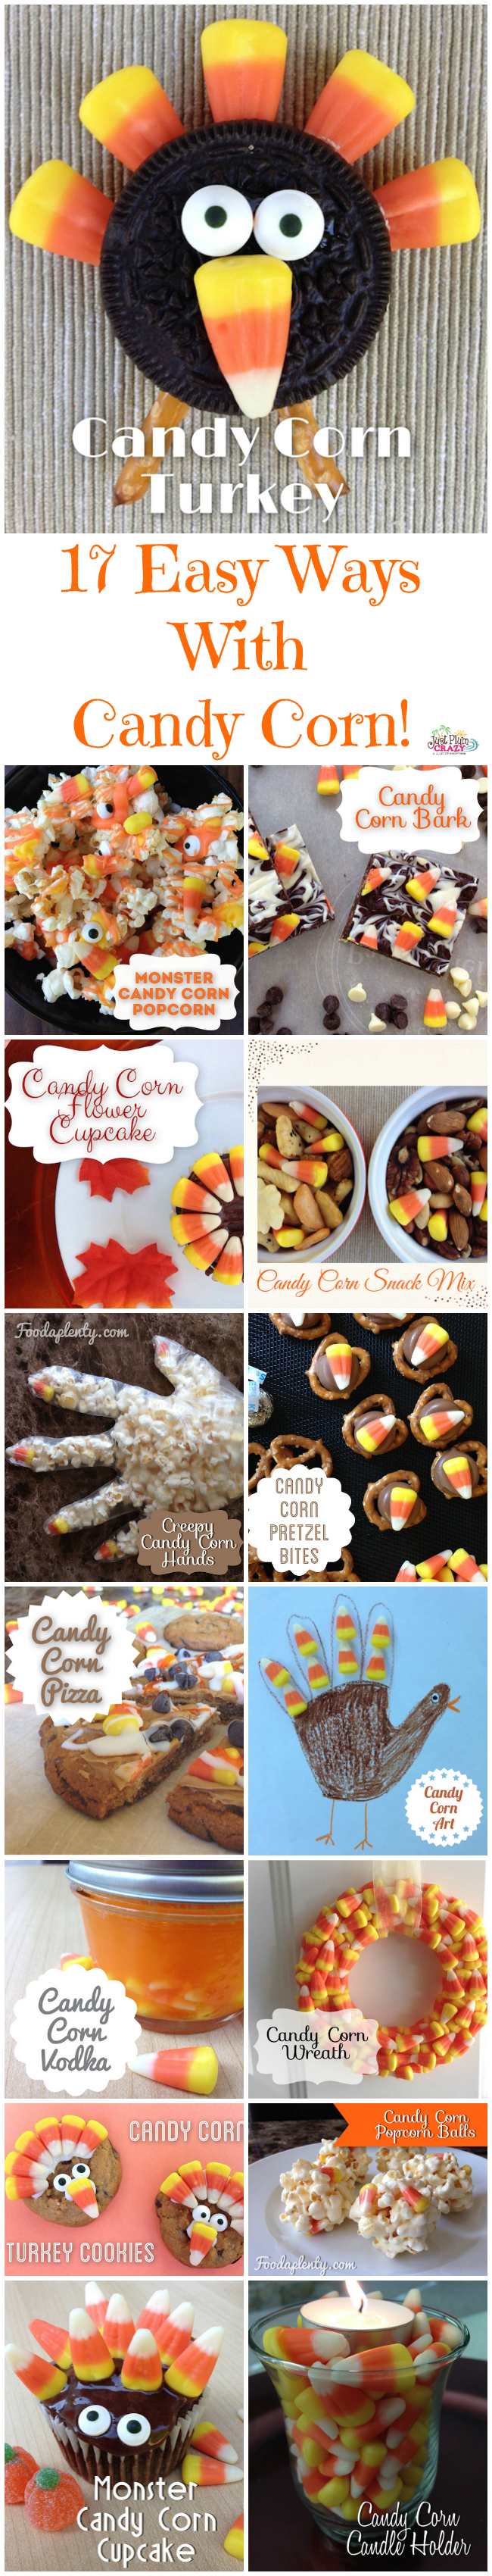 17 candy corn ideas from recipes to decorations